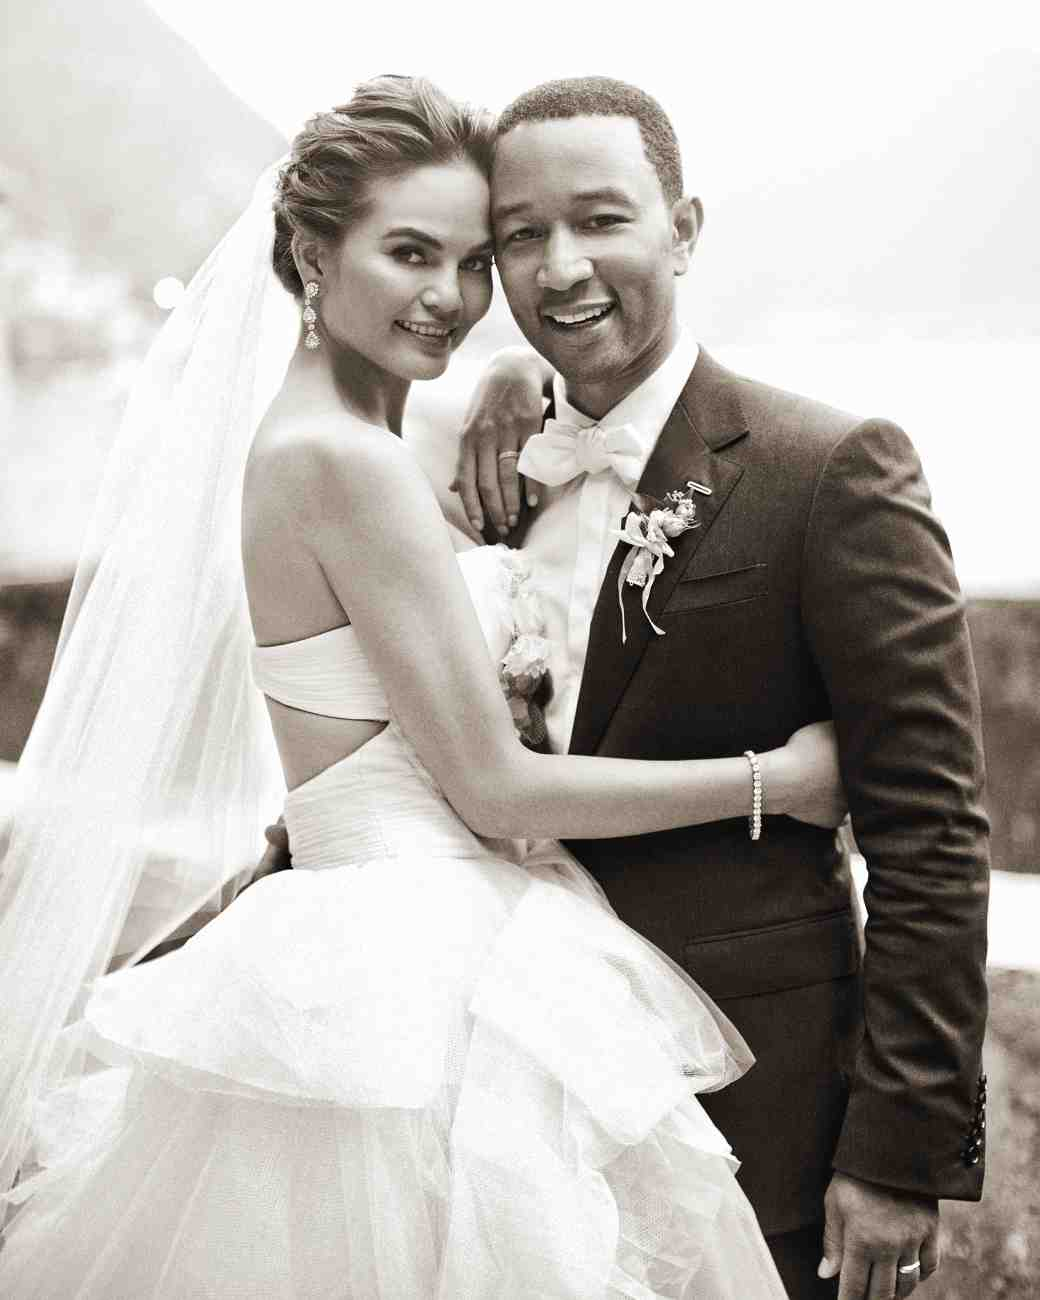 15 celebrity wedding dresses youll love to envy 6 chrissy teigen ombrellifo Image collections